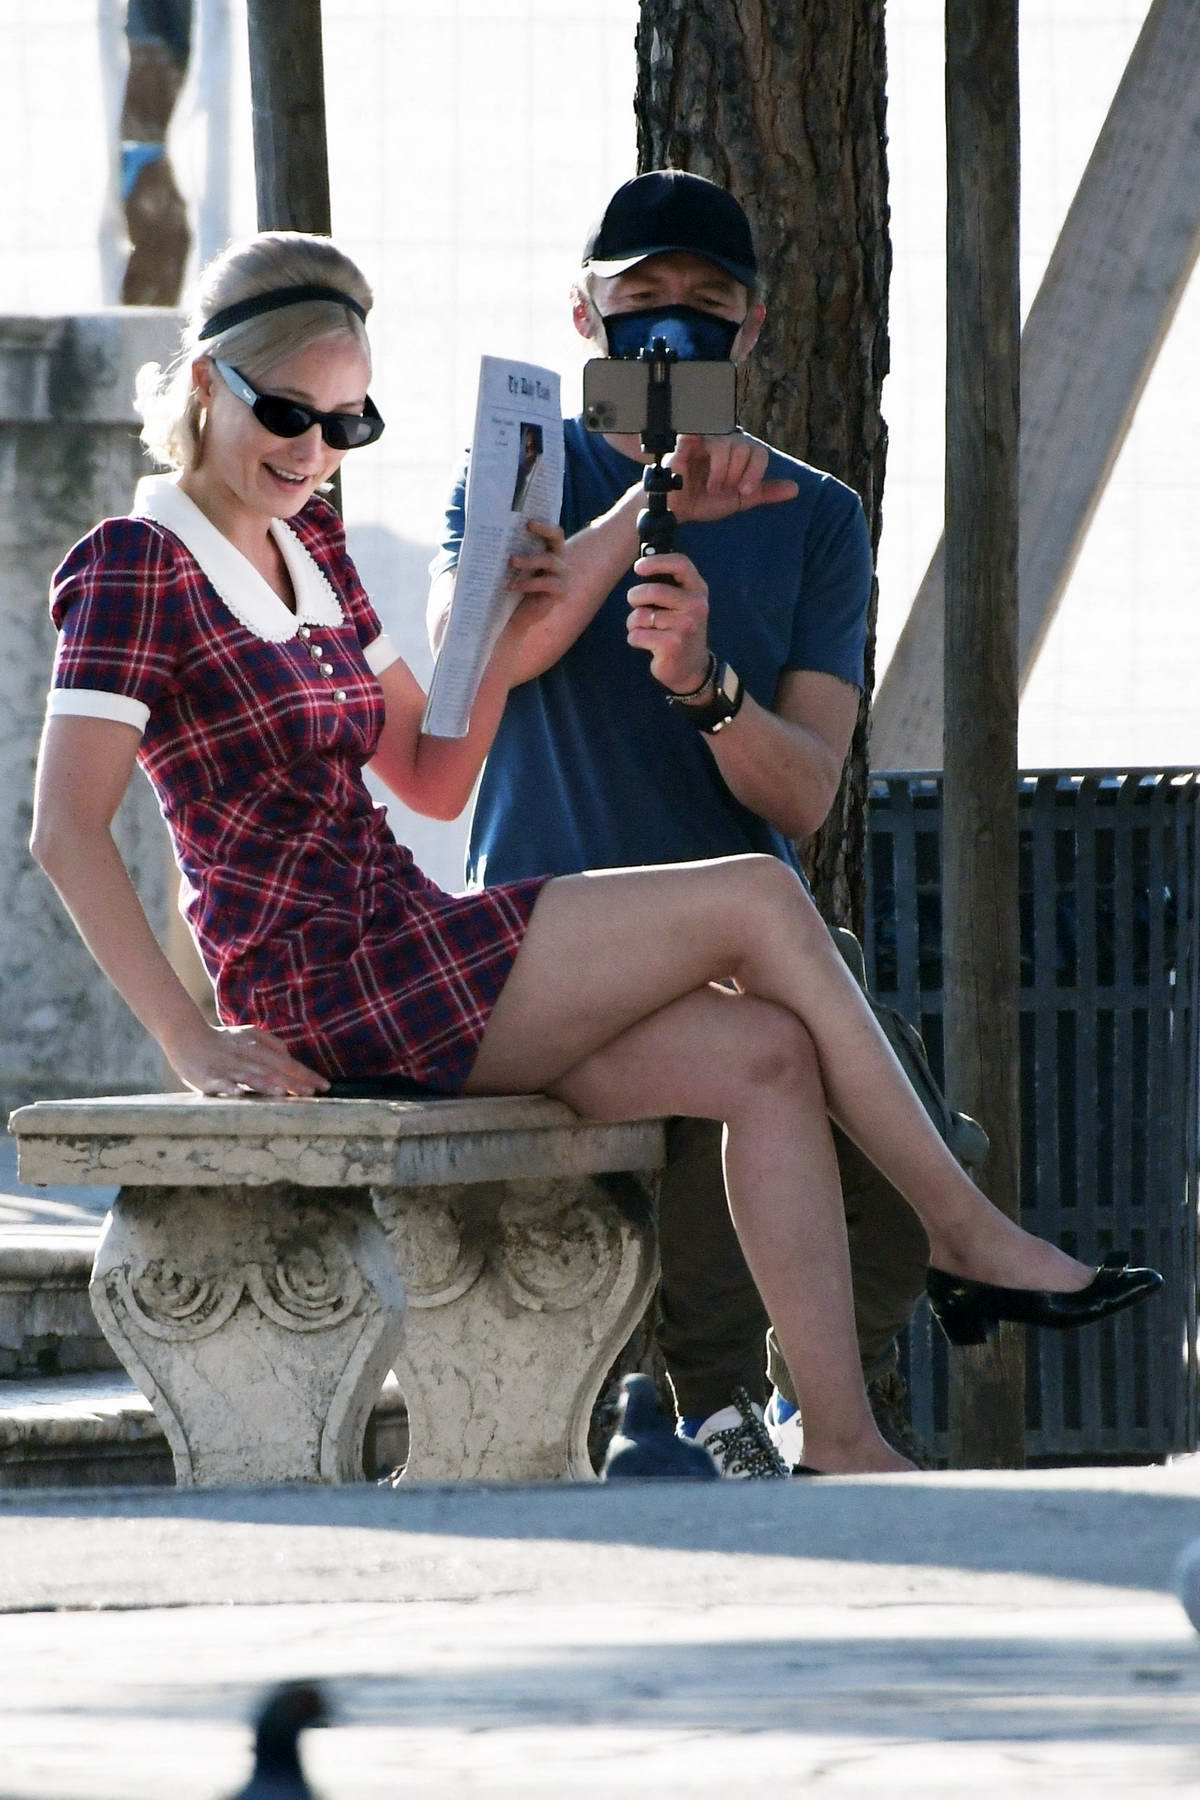 Pom Klementieff poses in a plaid minidress while Simon Pegg filming her on a mobile phone in Venice, Italy